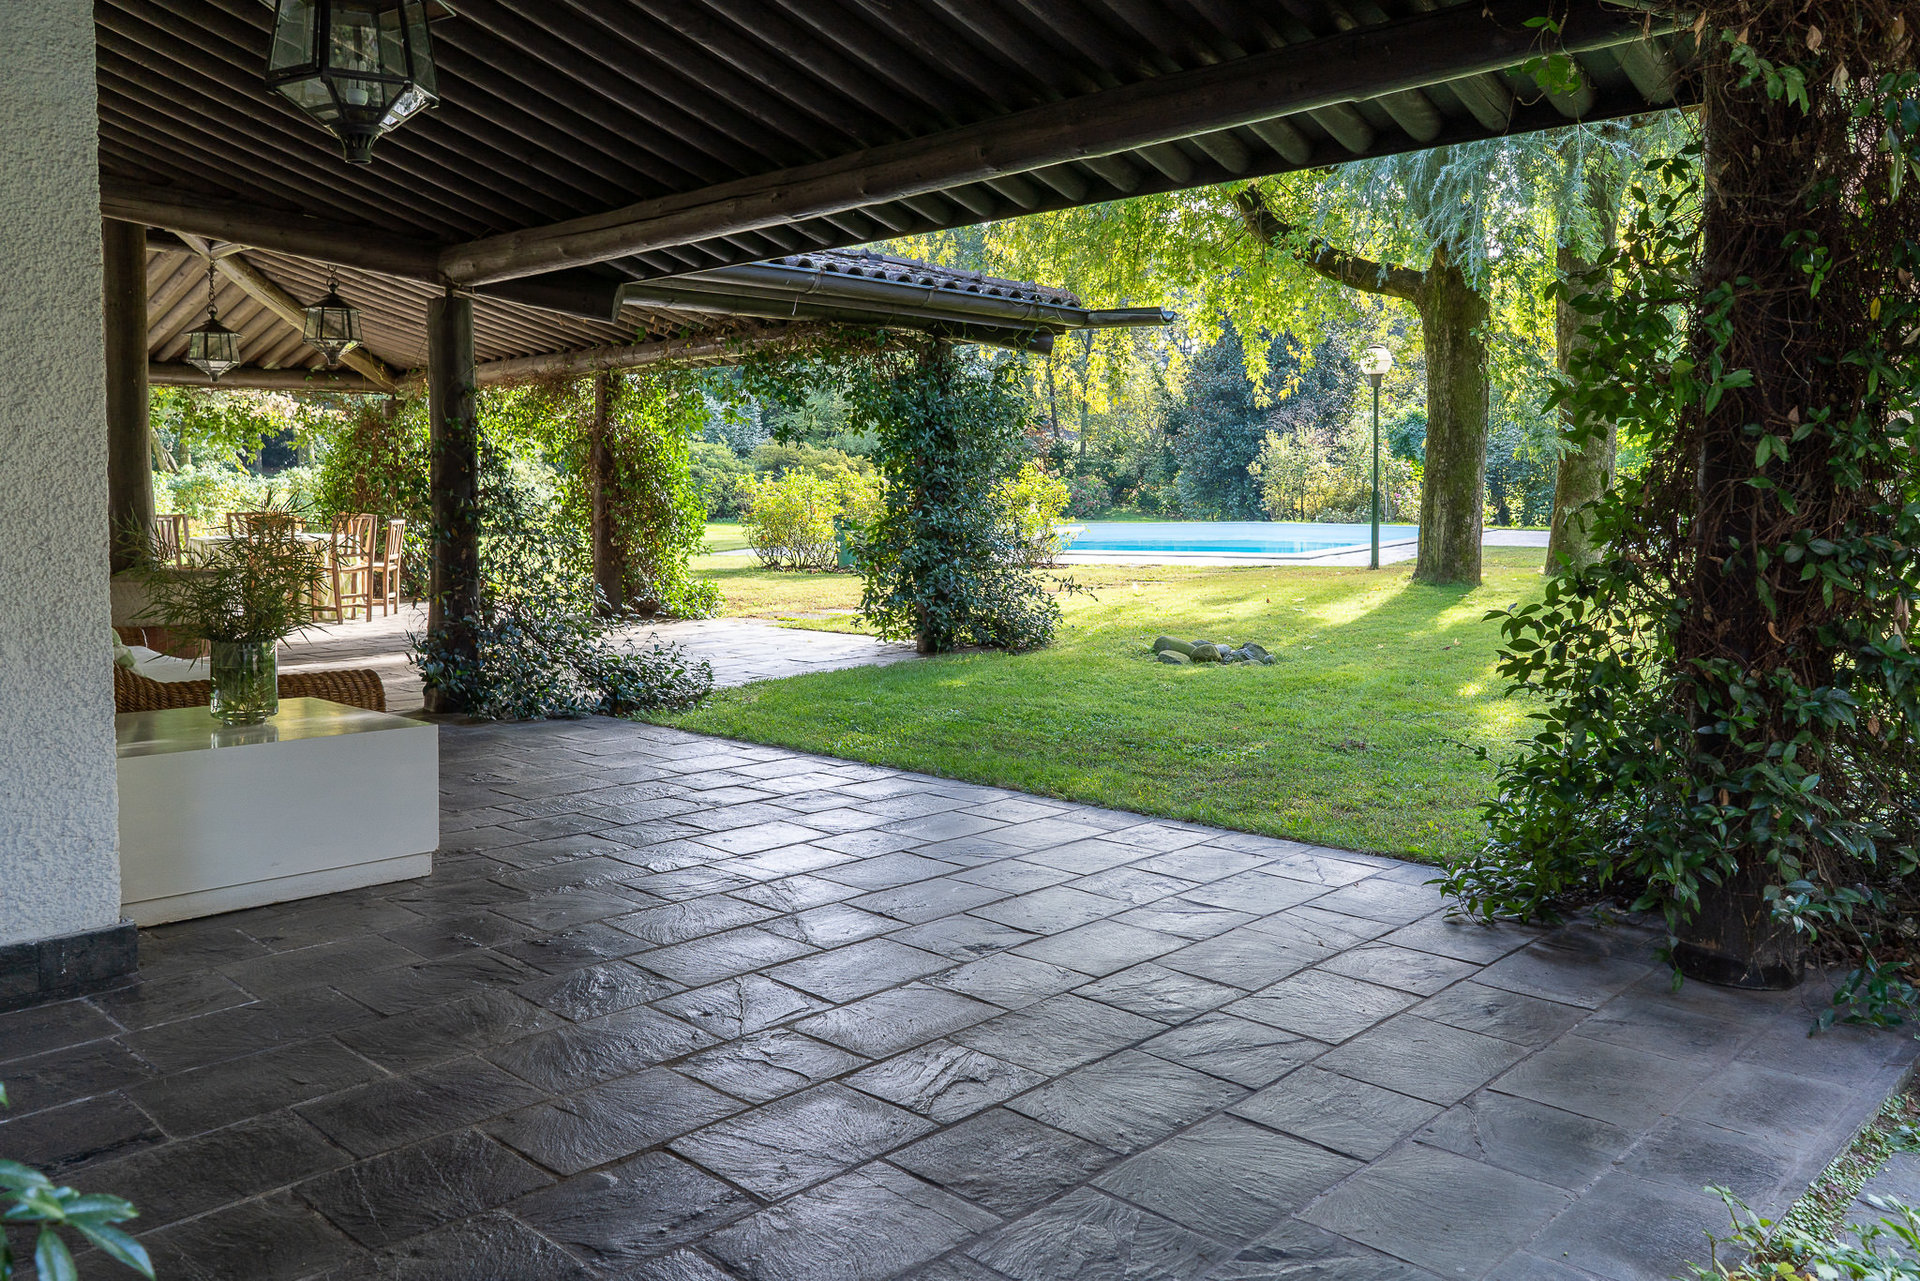 Period villa on the Ticino river for sale with park